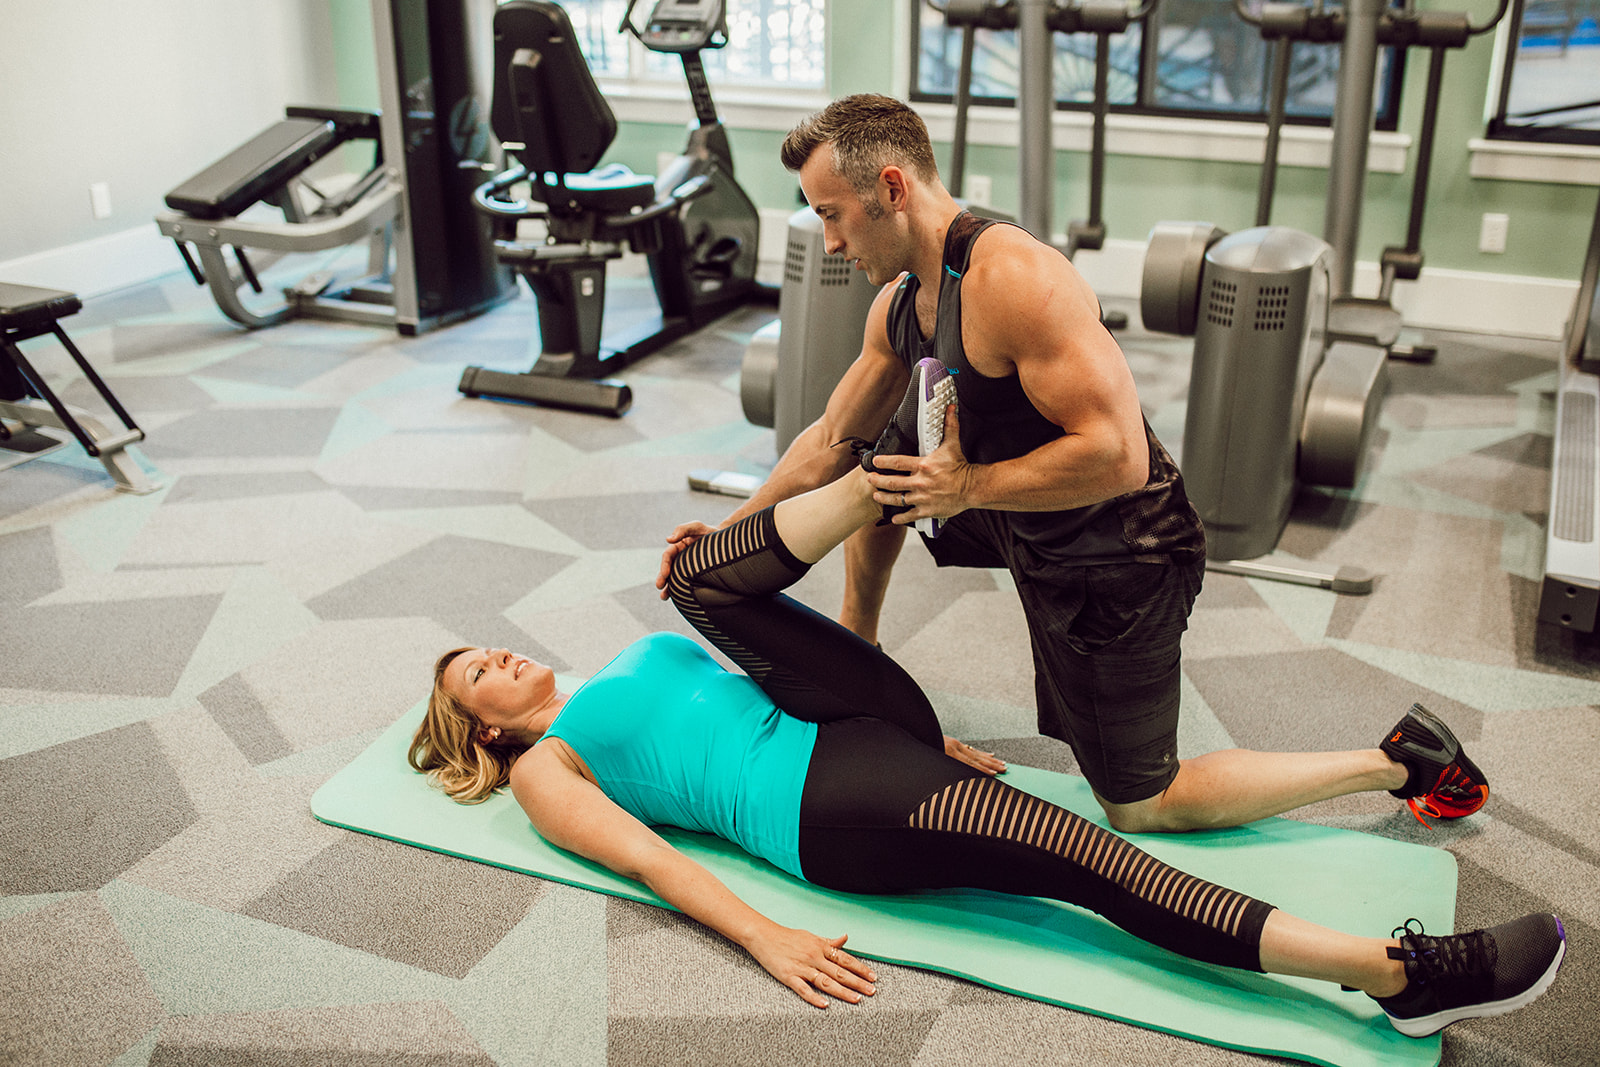 Personal Training - In-Person and Online Personal Training